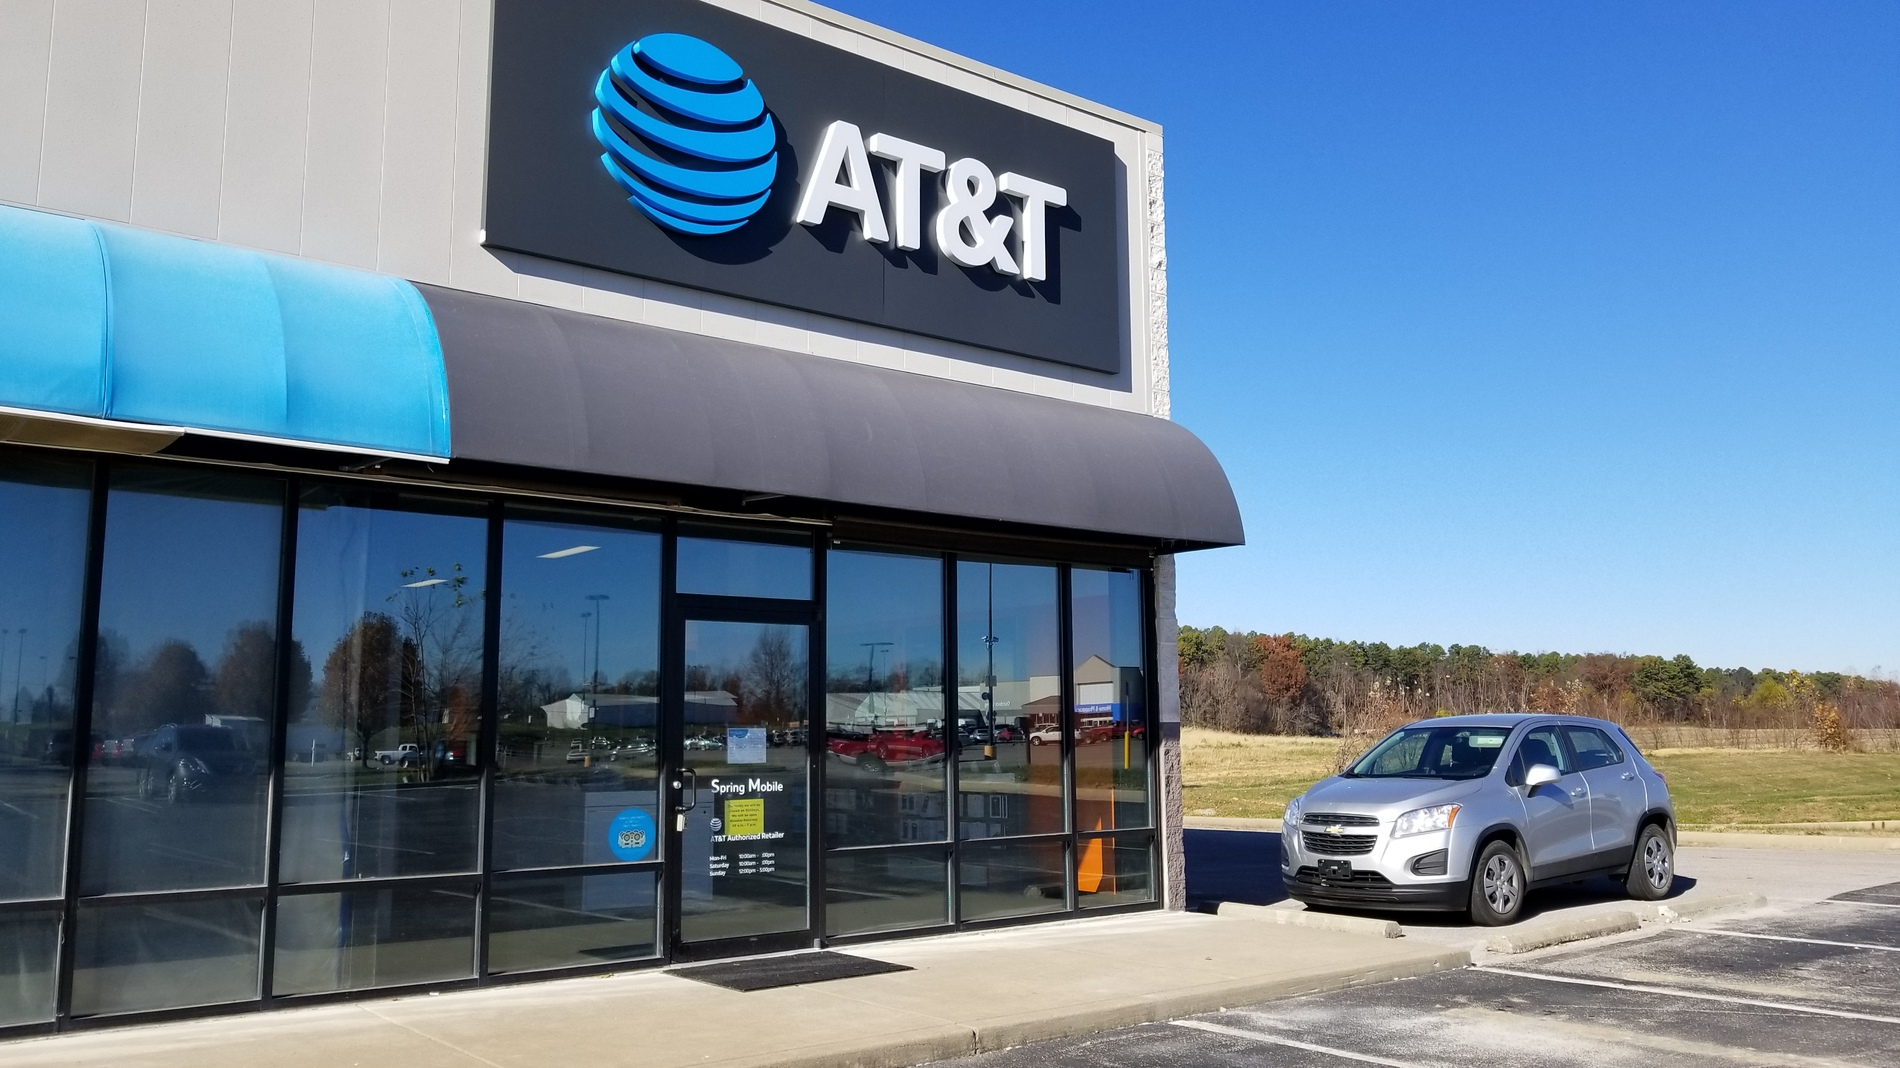 AT&T Store - Boonville - Boonville, IN